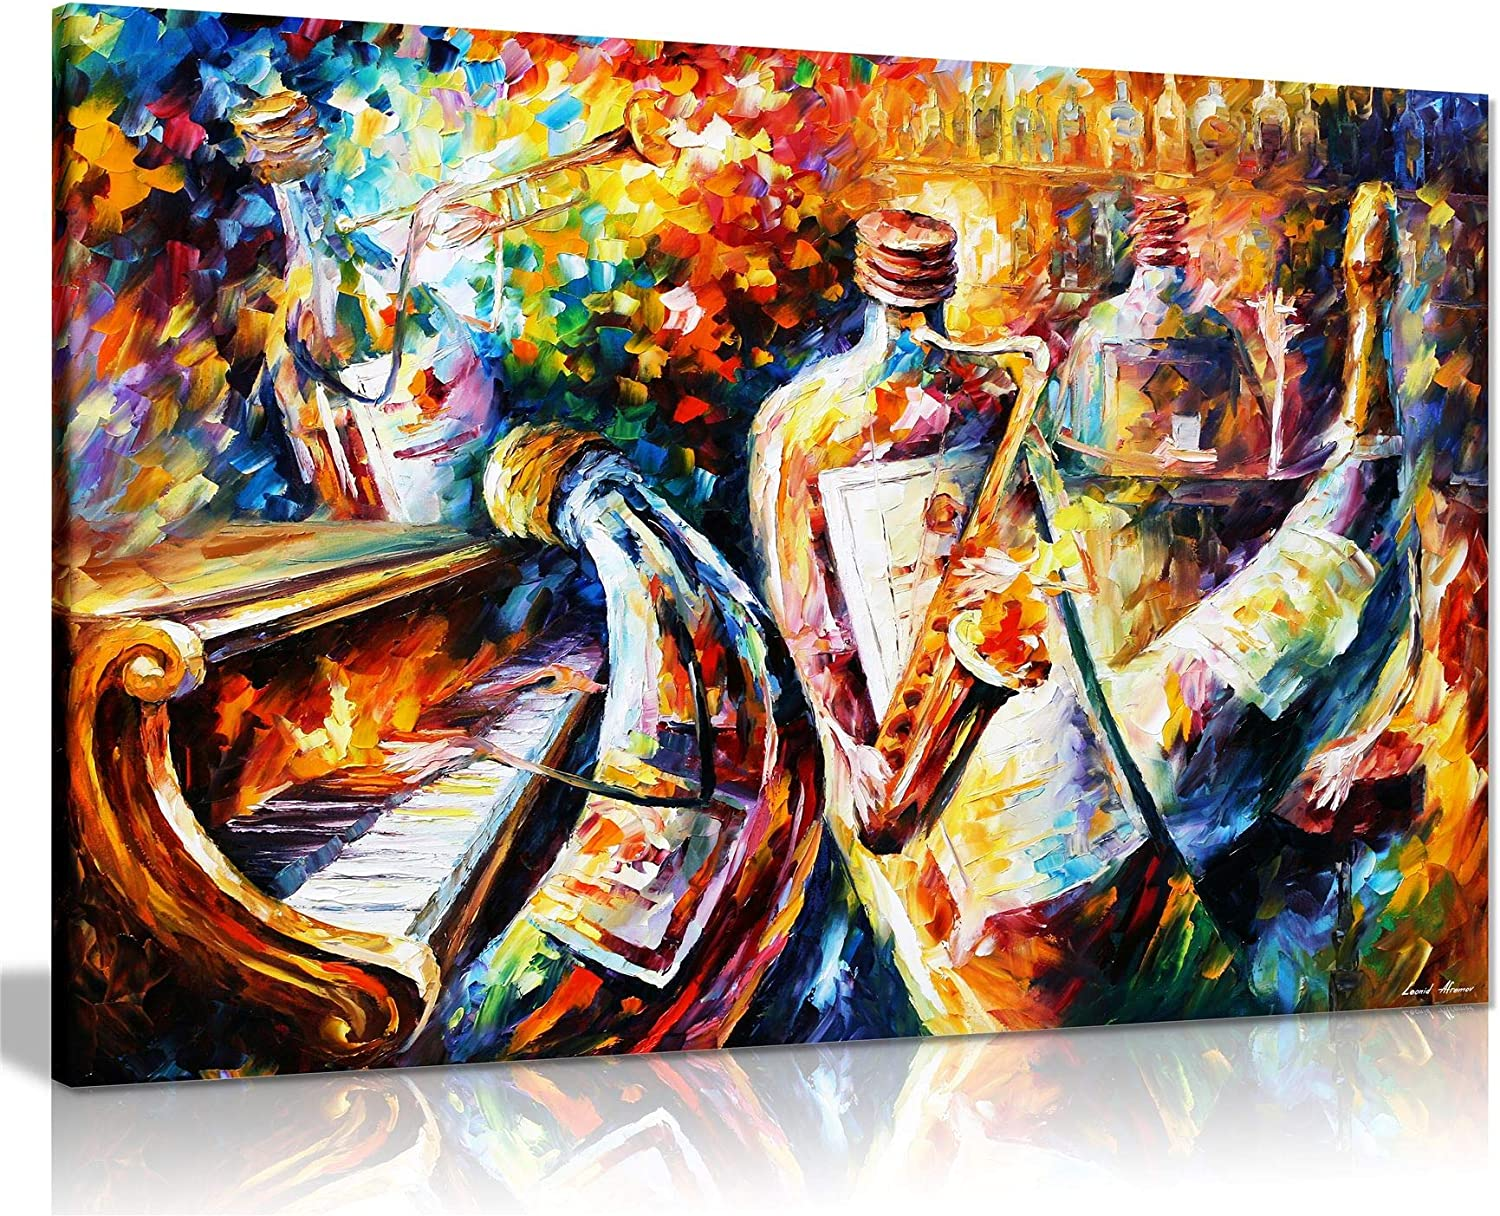 Bottle Jazz By Leonid Afremov Canvas Wall Art Picture Print For Home Decor 12x8 Amazon Co Uk Kitchen Home